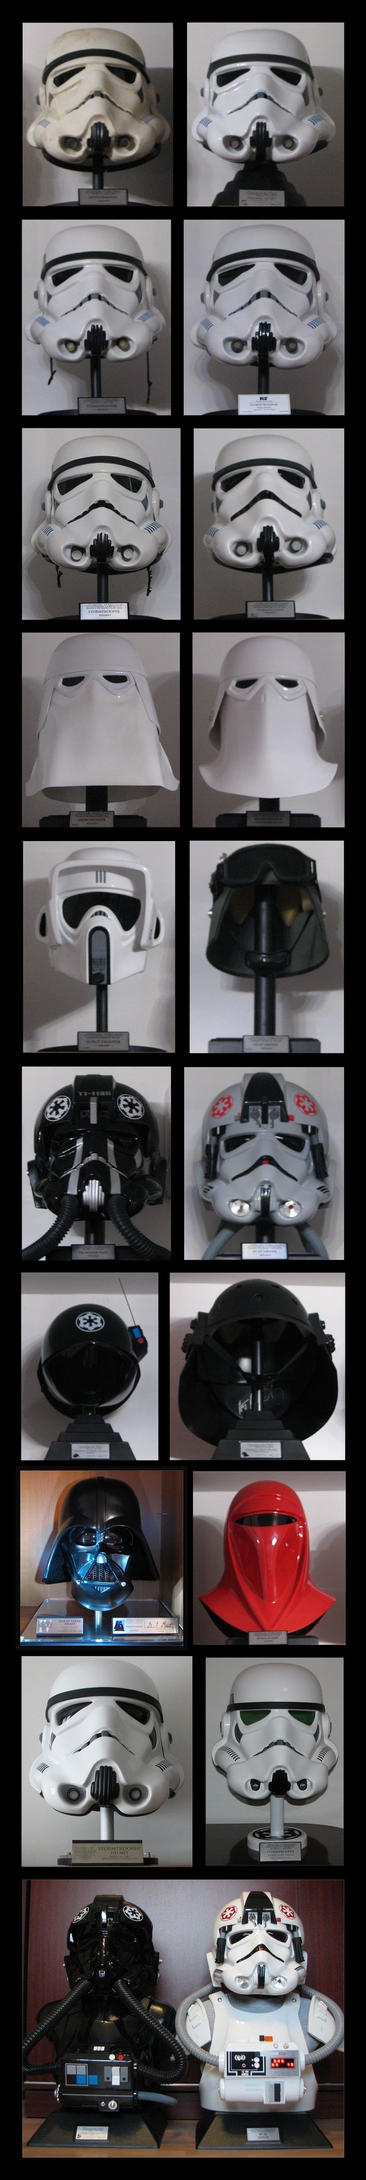 Star Wars Imperial helmets by jkno4u